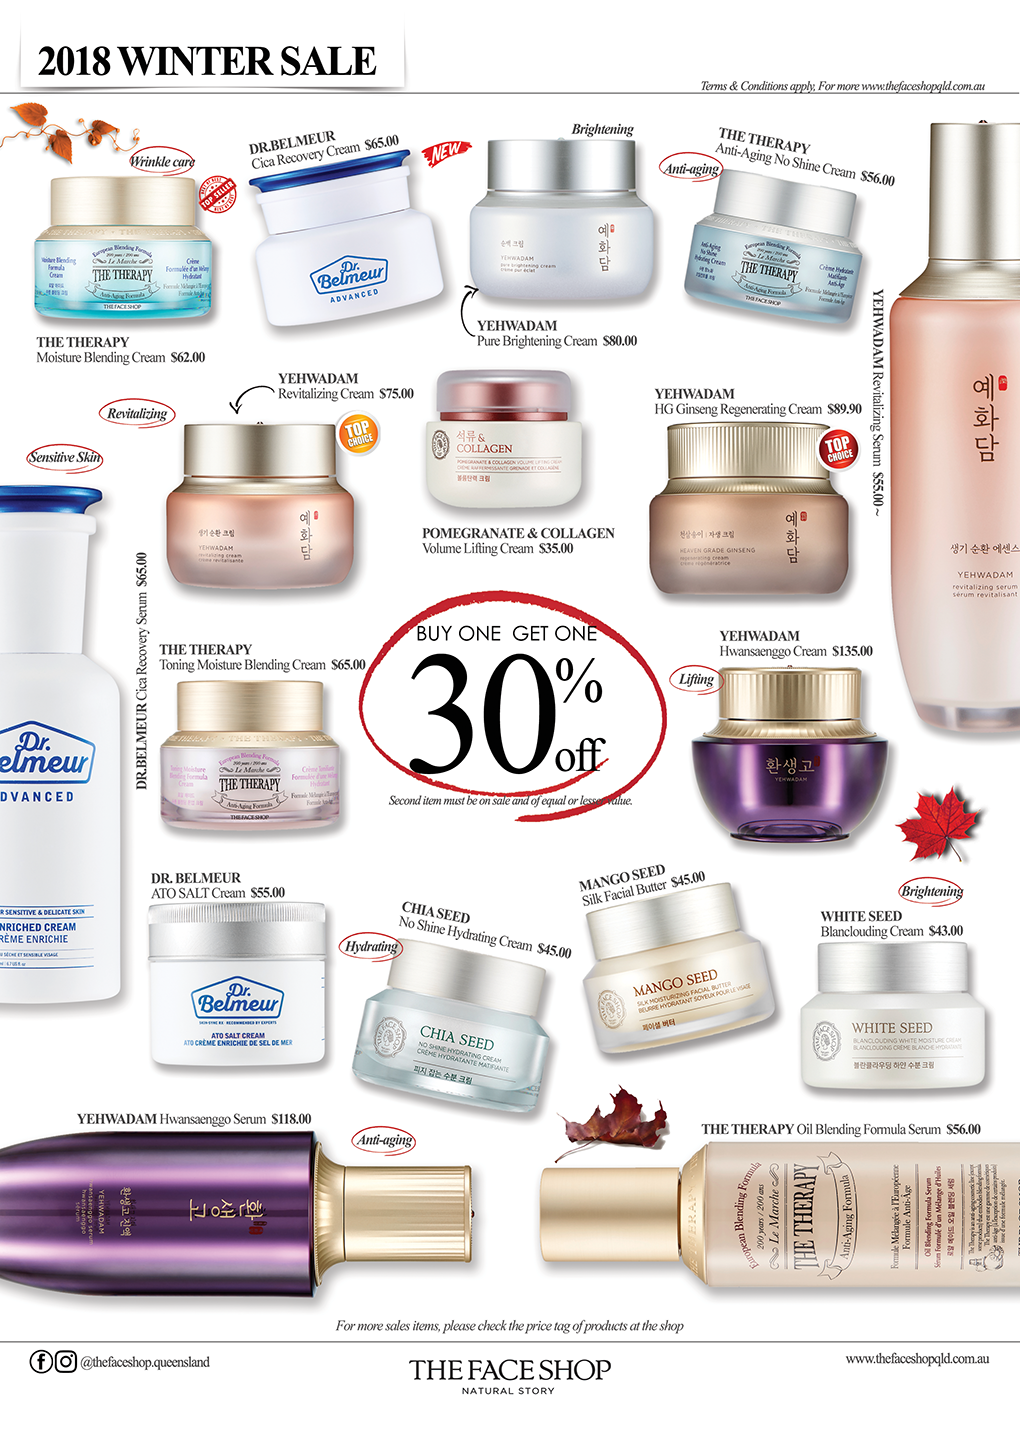 thefaceshop winte rsale